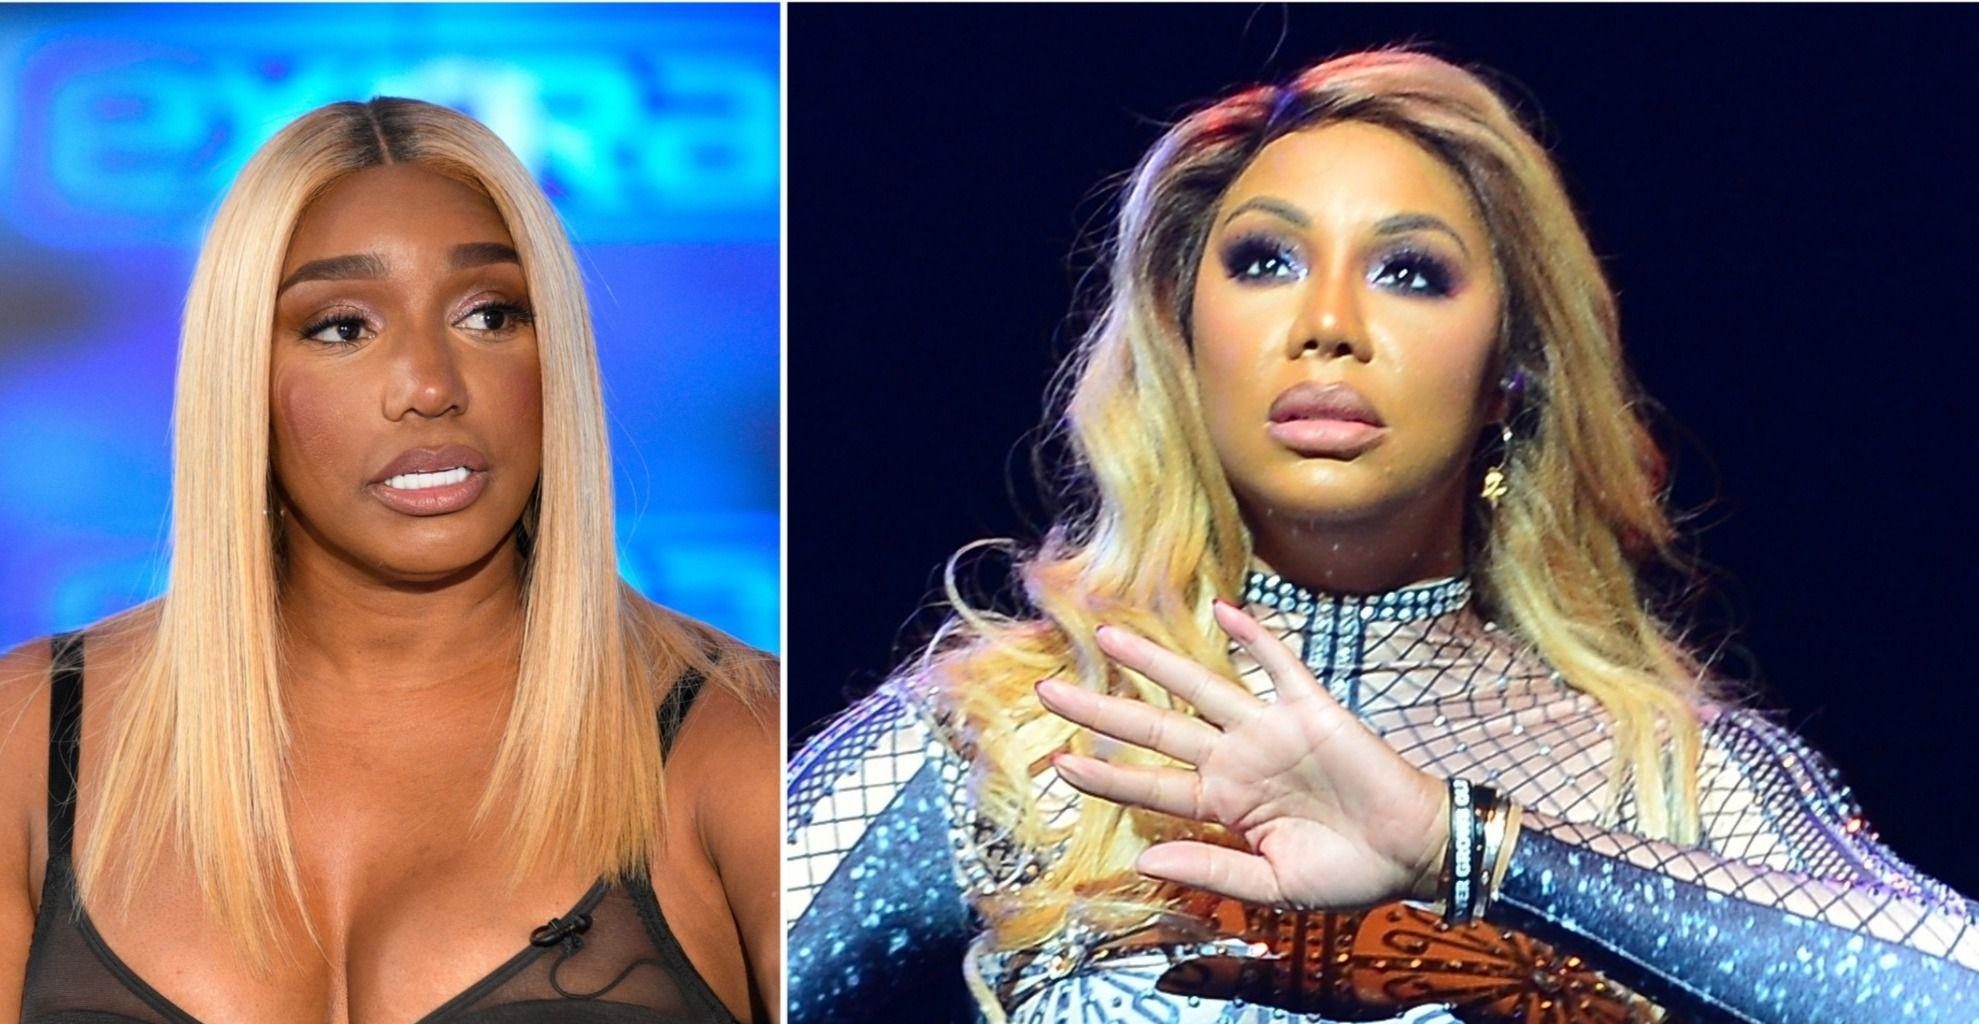 Tamar Braxton Parties With NeNe Leakes For Her Birthday! Check Out Their Video Together